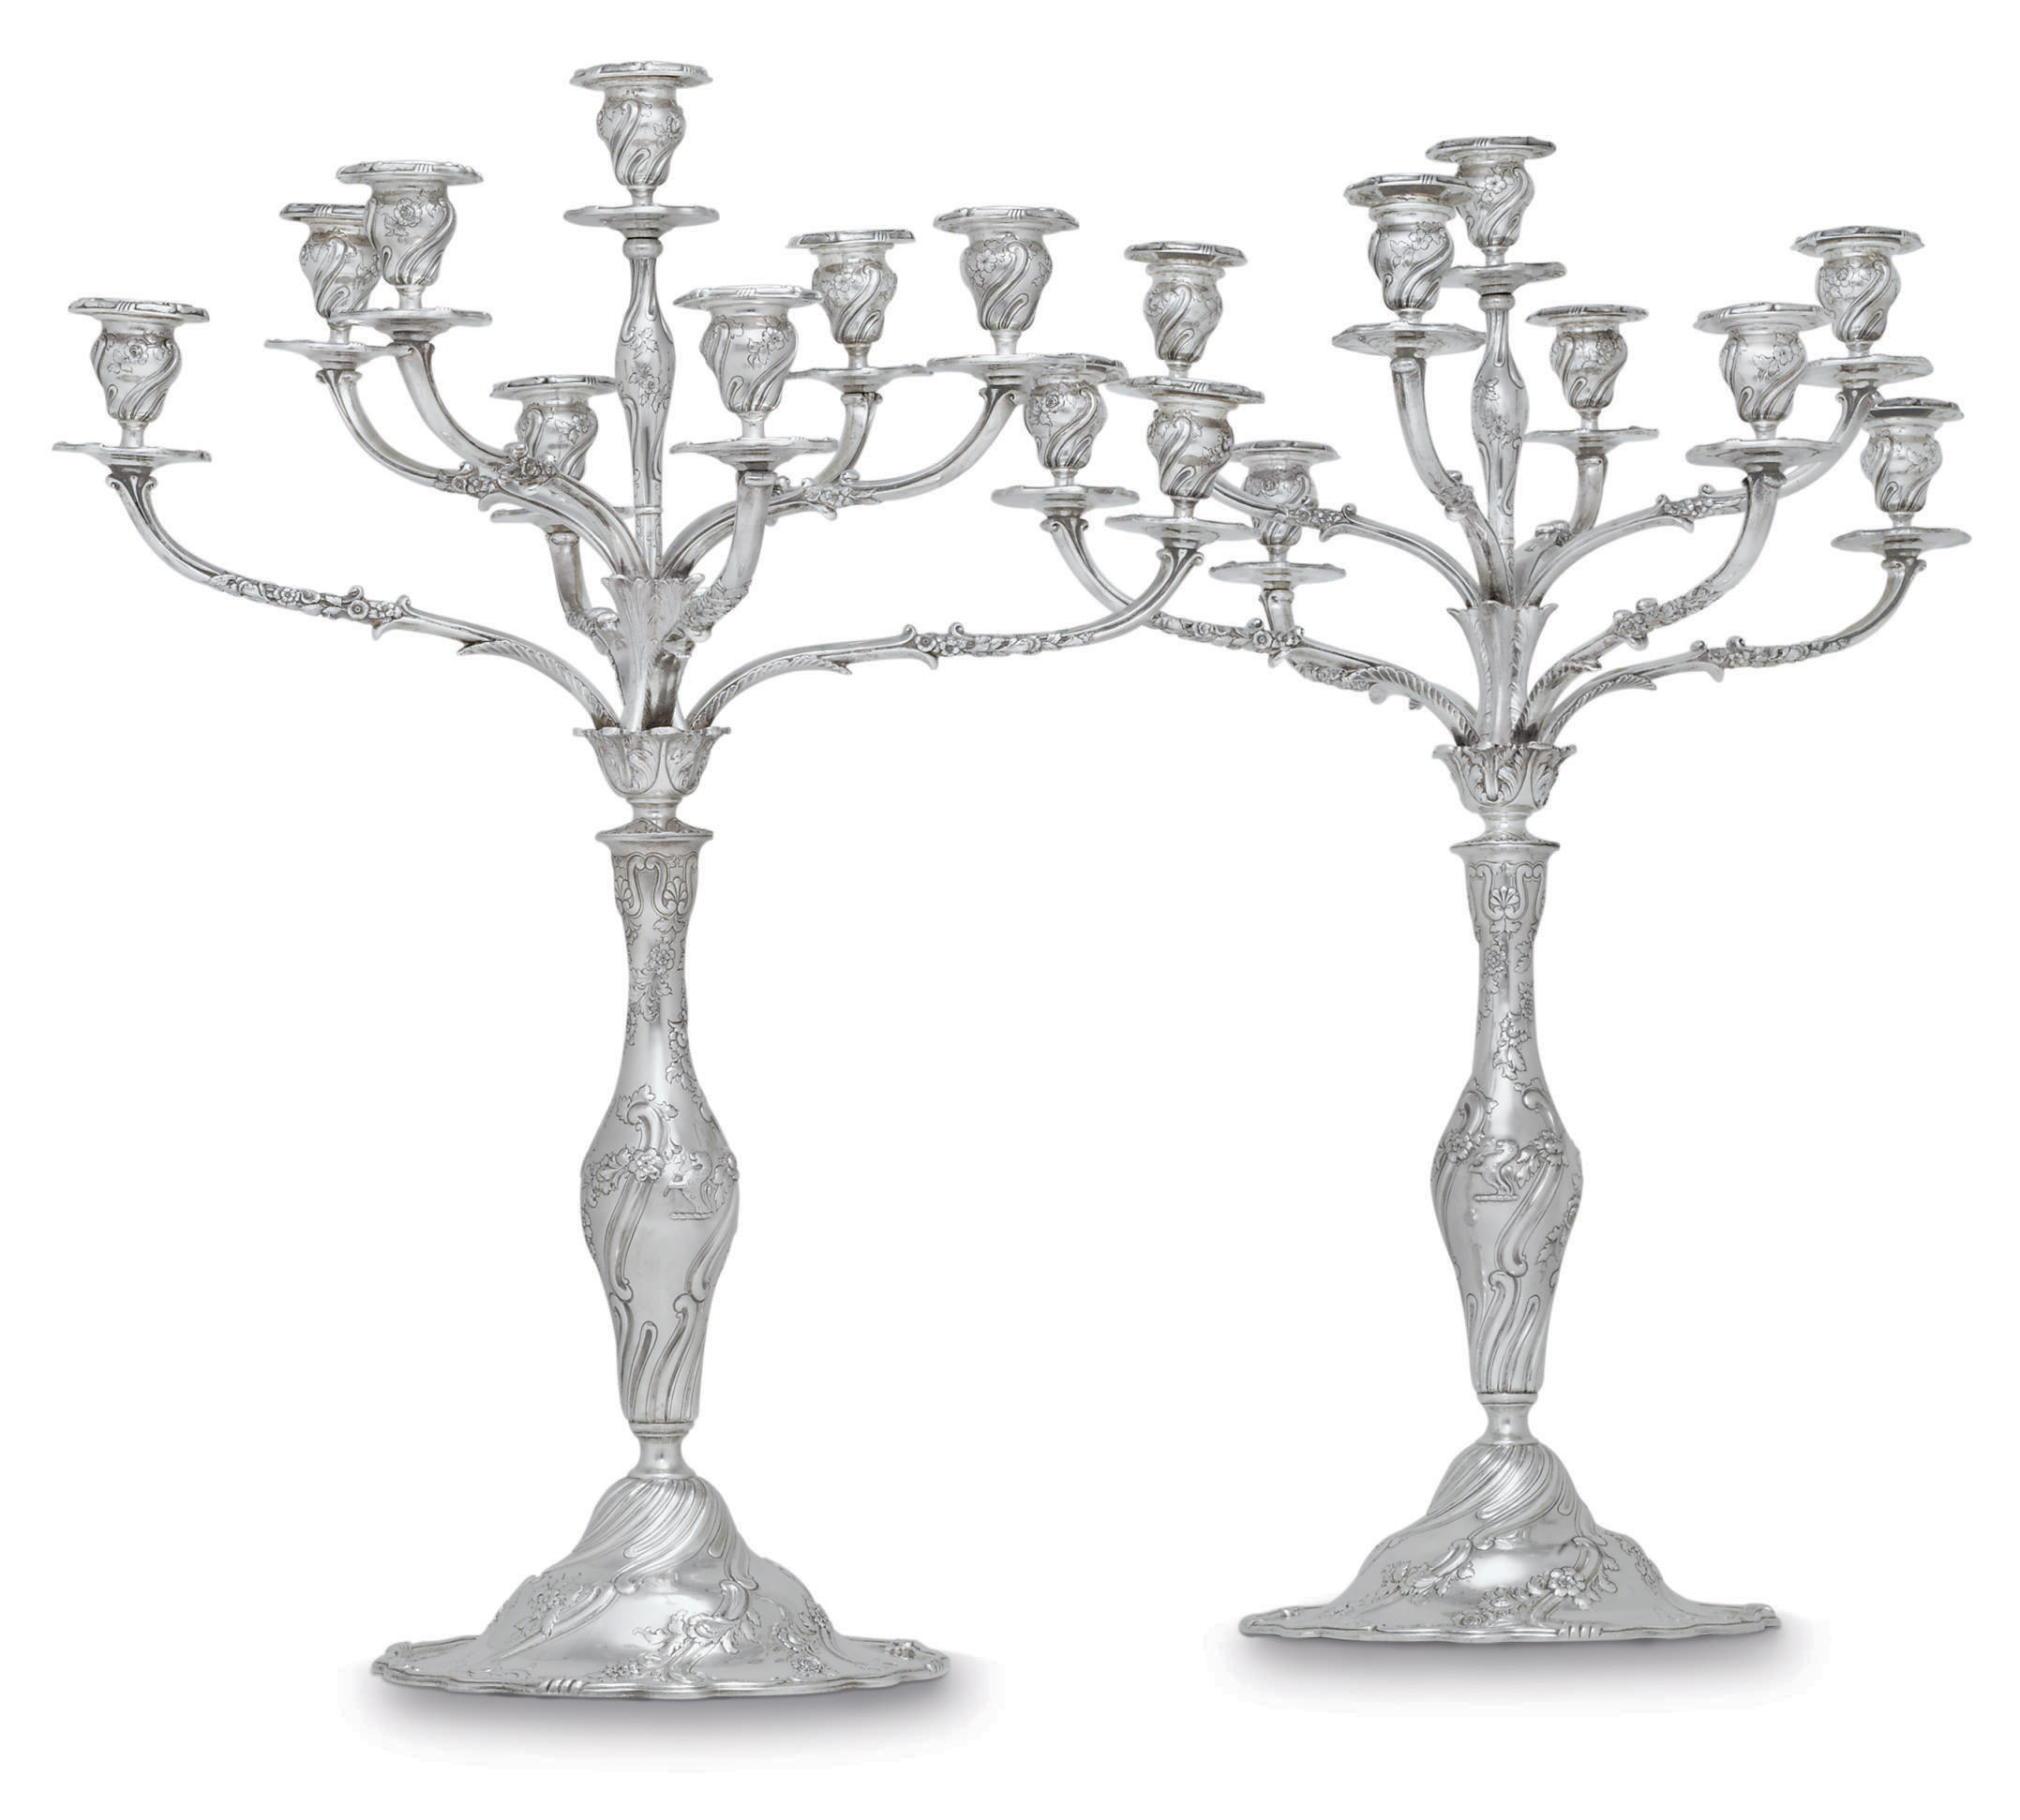 A PAIR OF AMERICAN SILVER NINE-LIGHT CANDELABRA